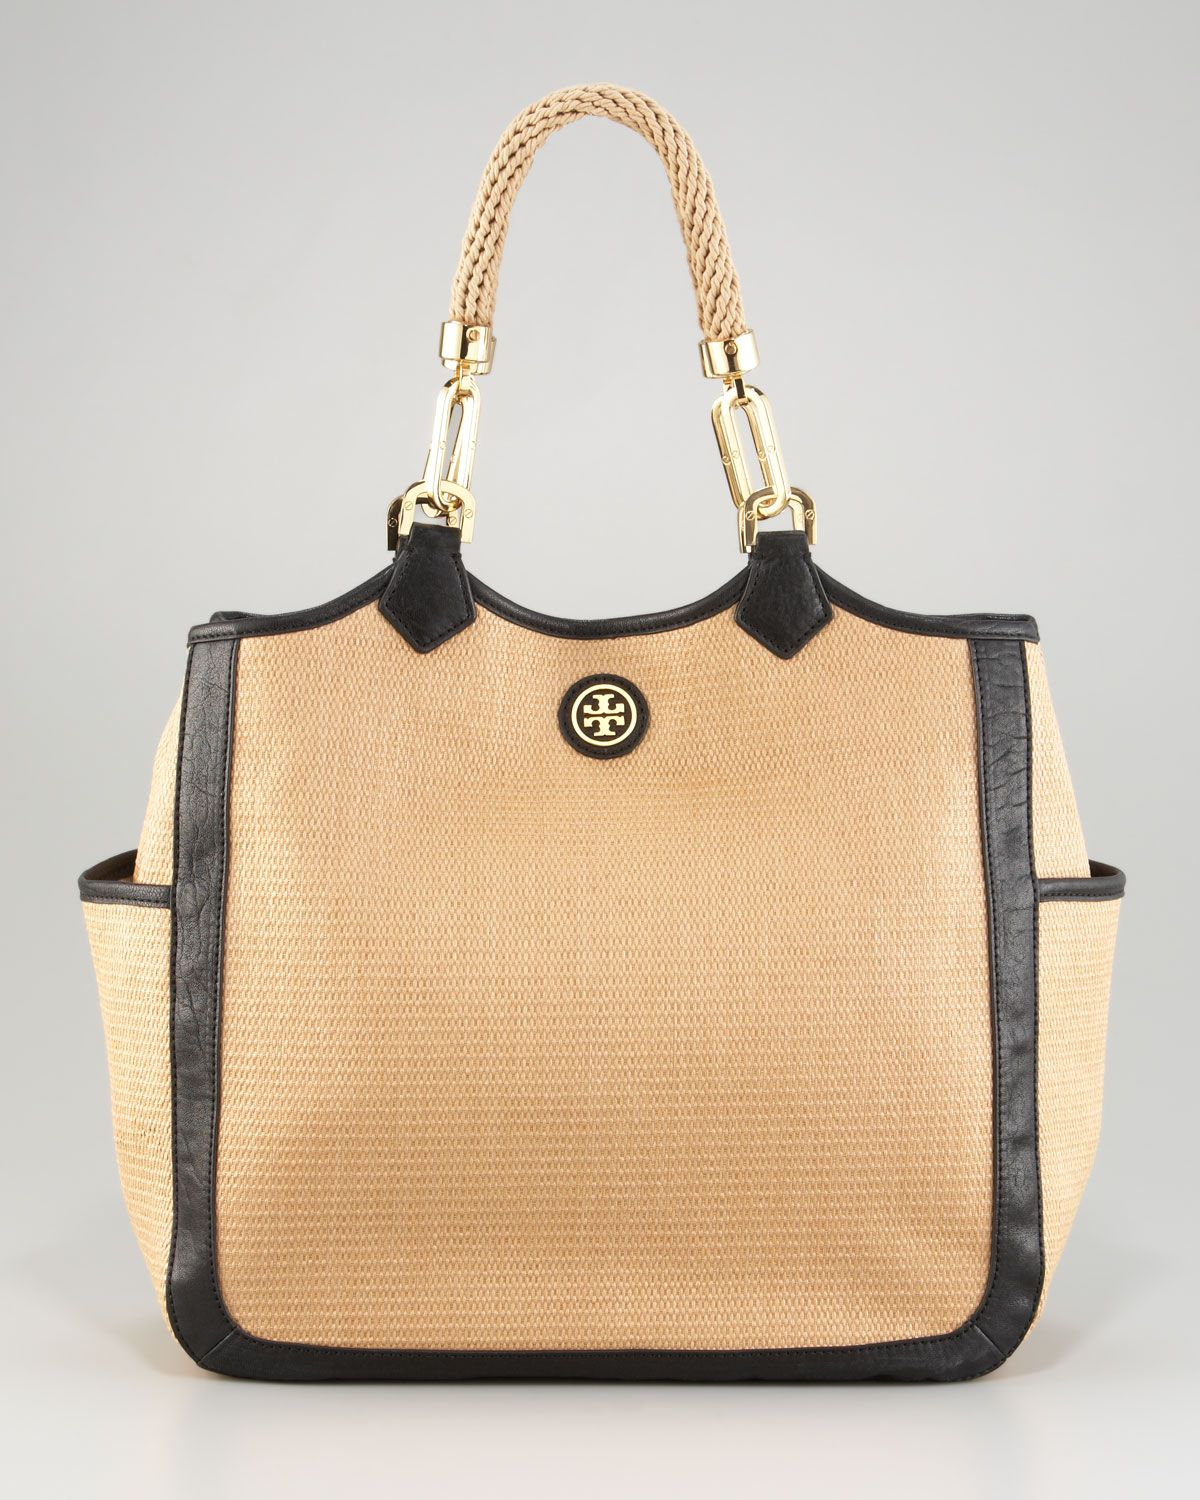 Tory Burch Channing Straw Tote Accessories